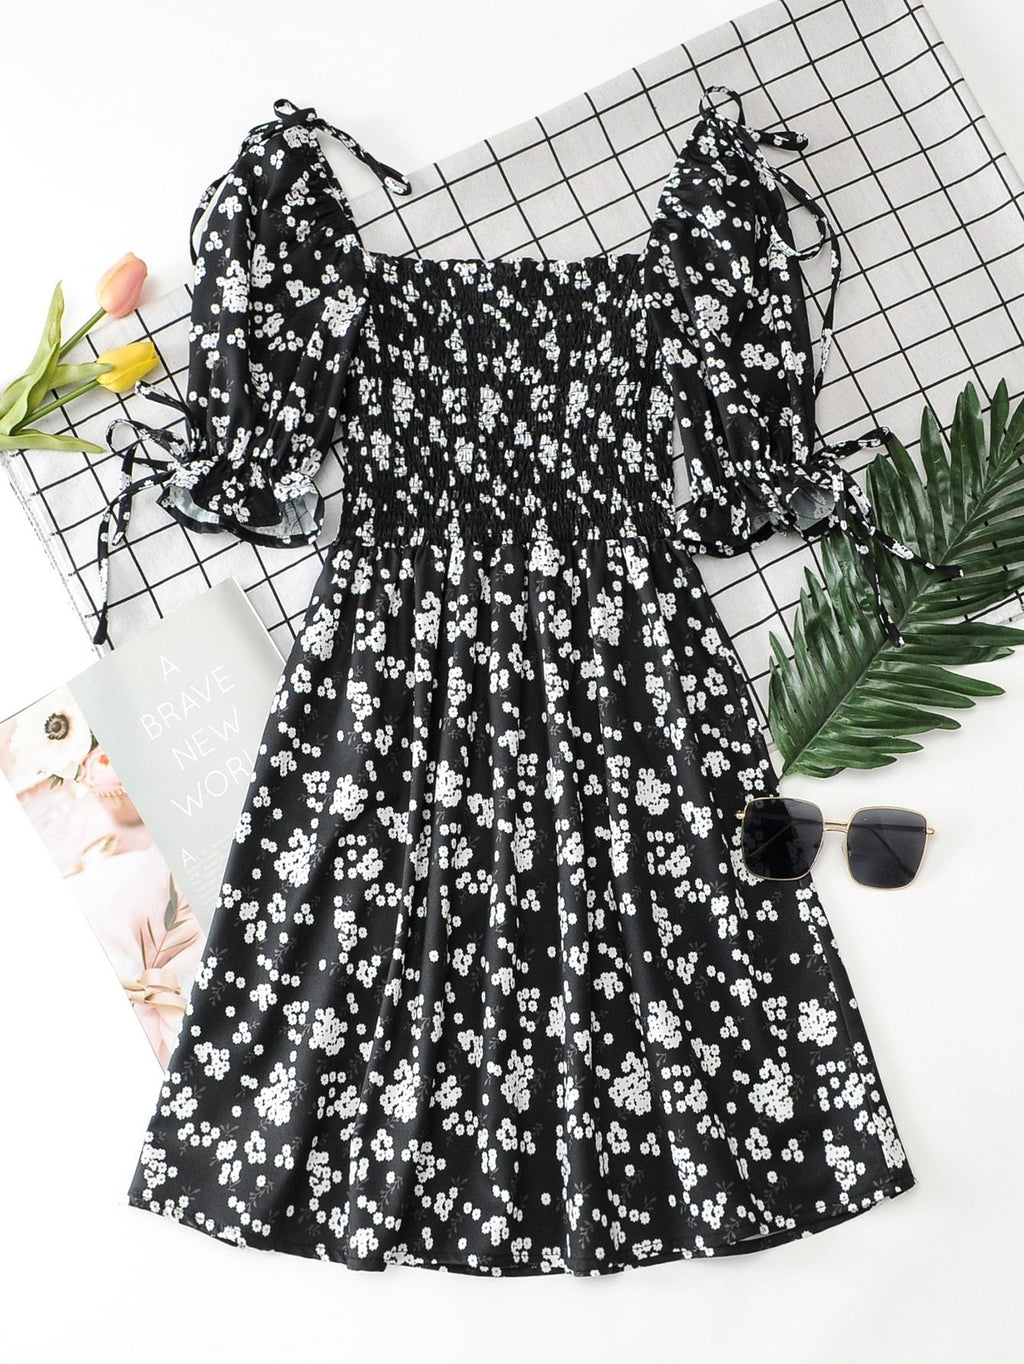 Knot Detail Ditsy Floral Shirred Dress - INS | Online Fashion Free Shipping Clothing, Dresses, Tops, Shoes